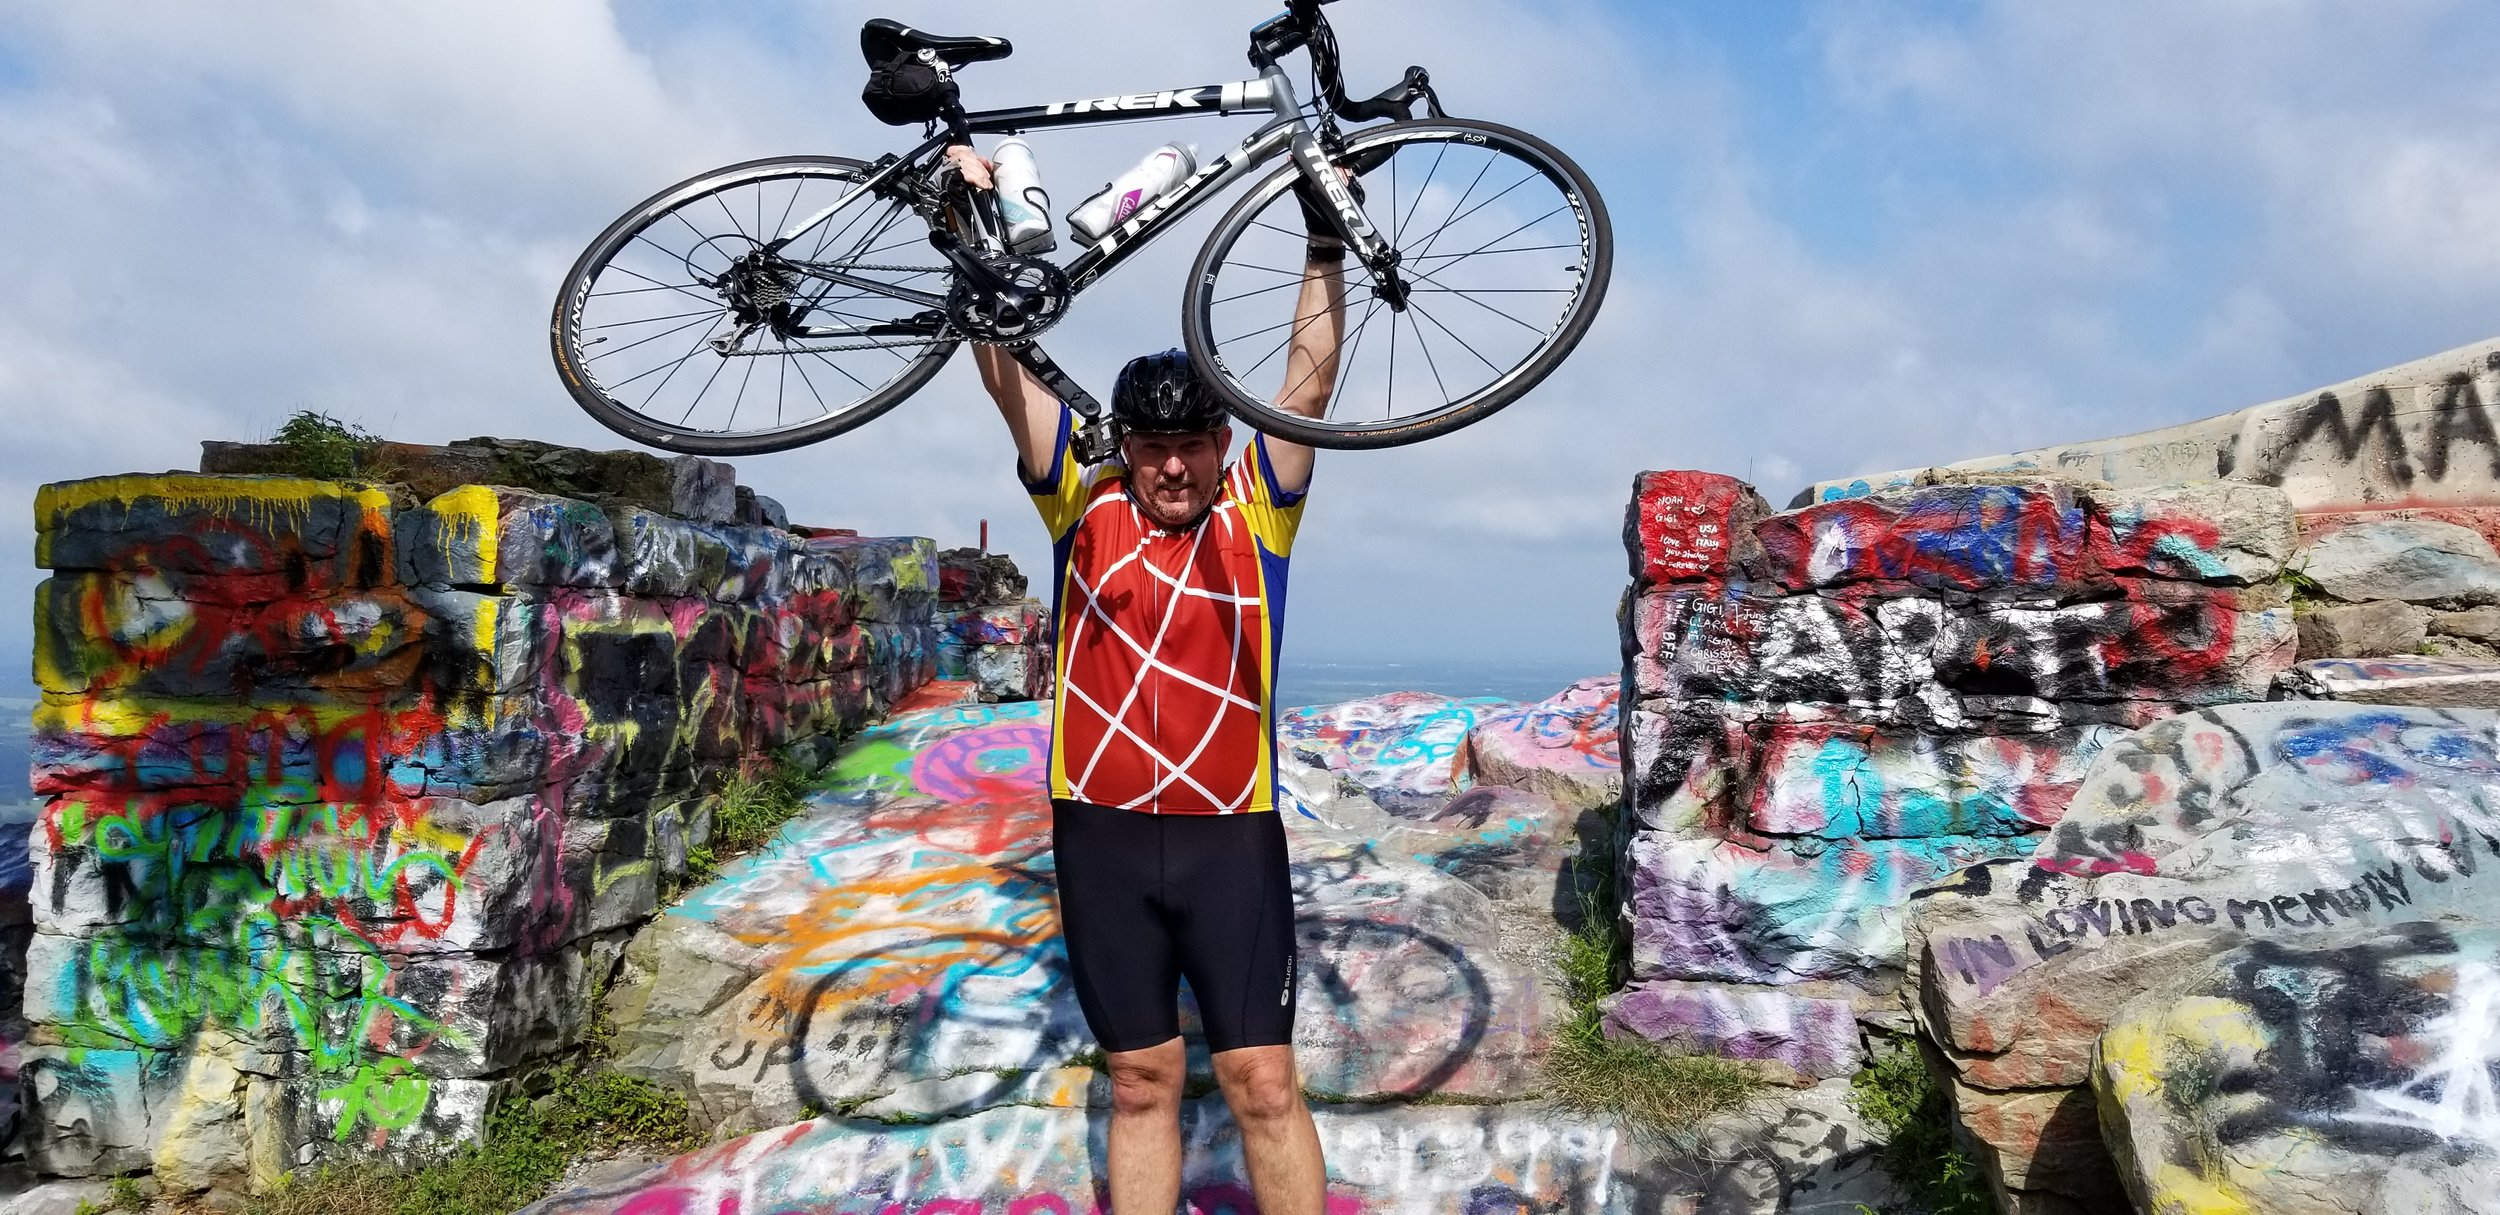 Meet C. Steven Gray: Never rode over 33 miles then goes out and does over a 100 miles in a day!